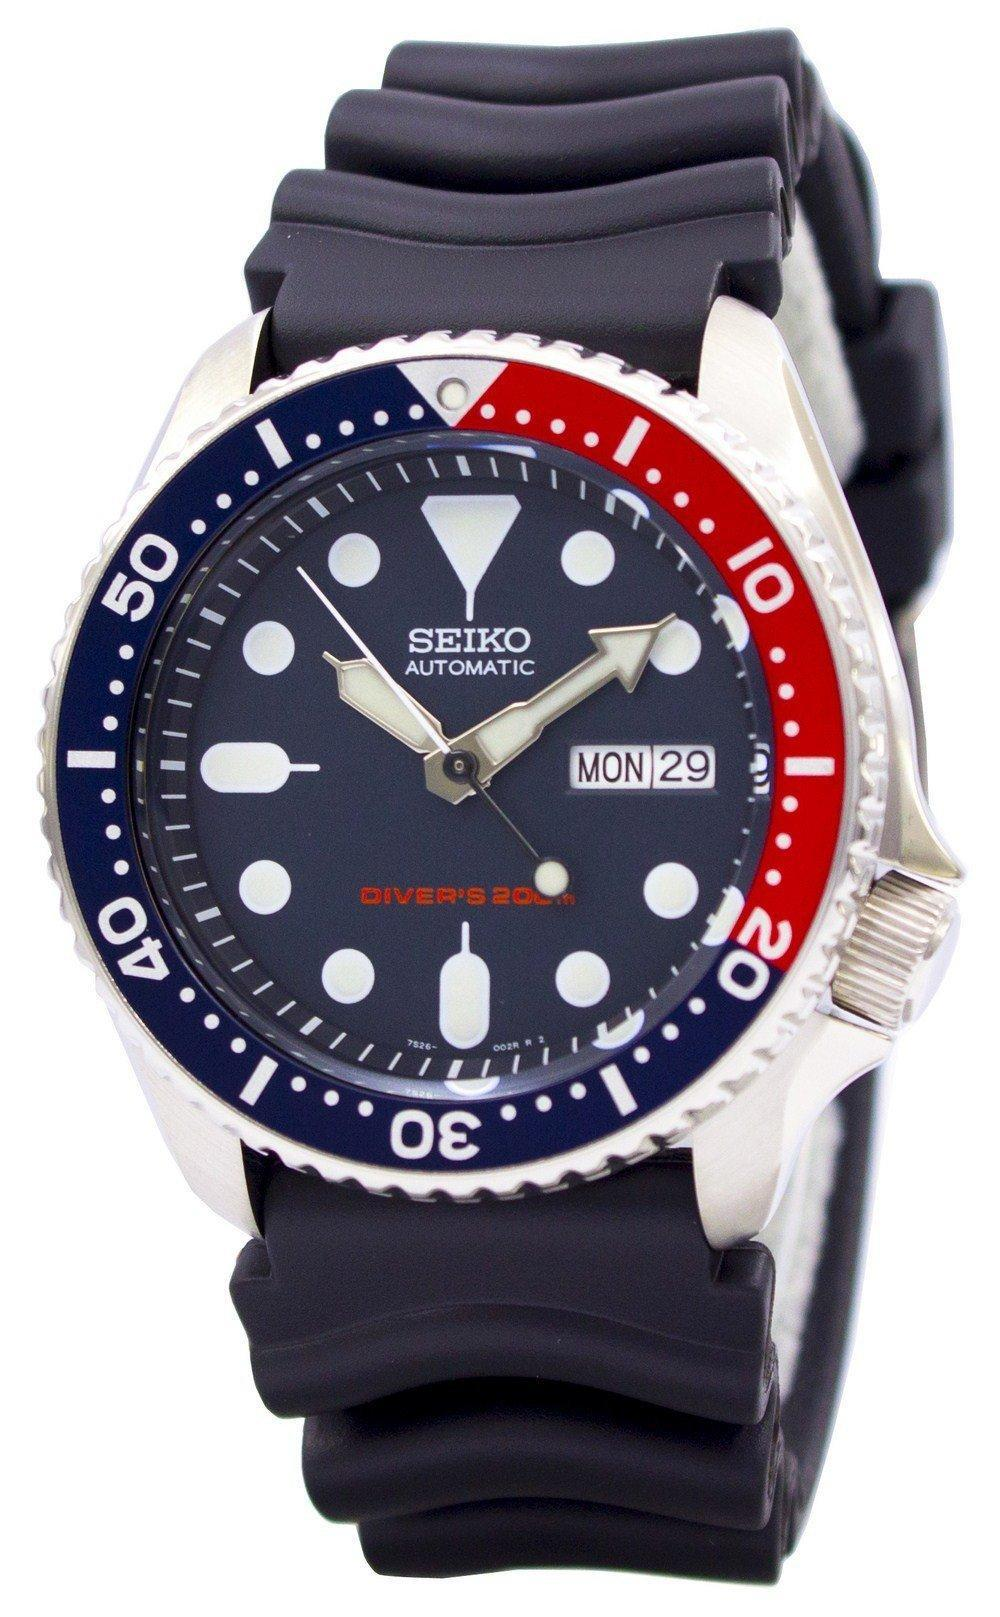 392271b387b Seiko Automatic Diver s Skx009 Skx009k1 Skx009k Men s Watch (FREE Shipping)